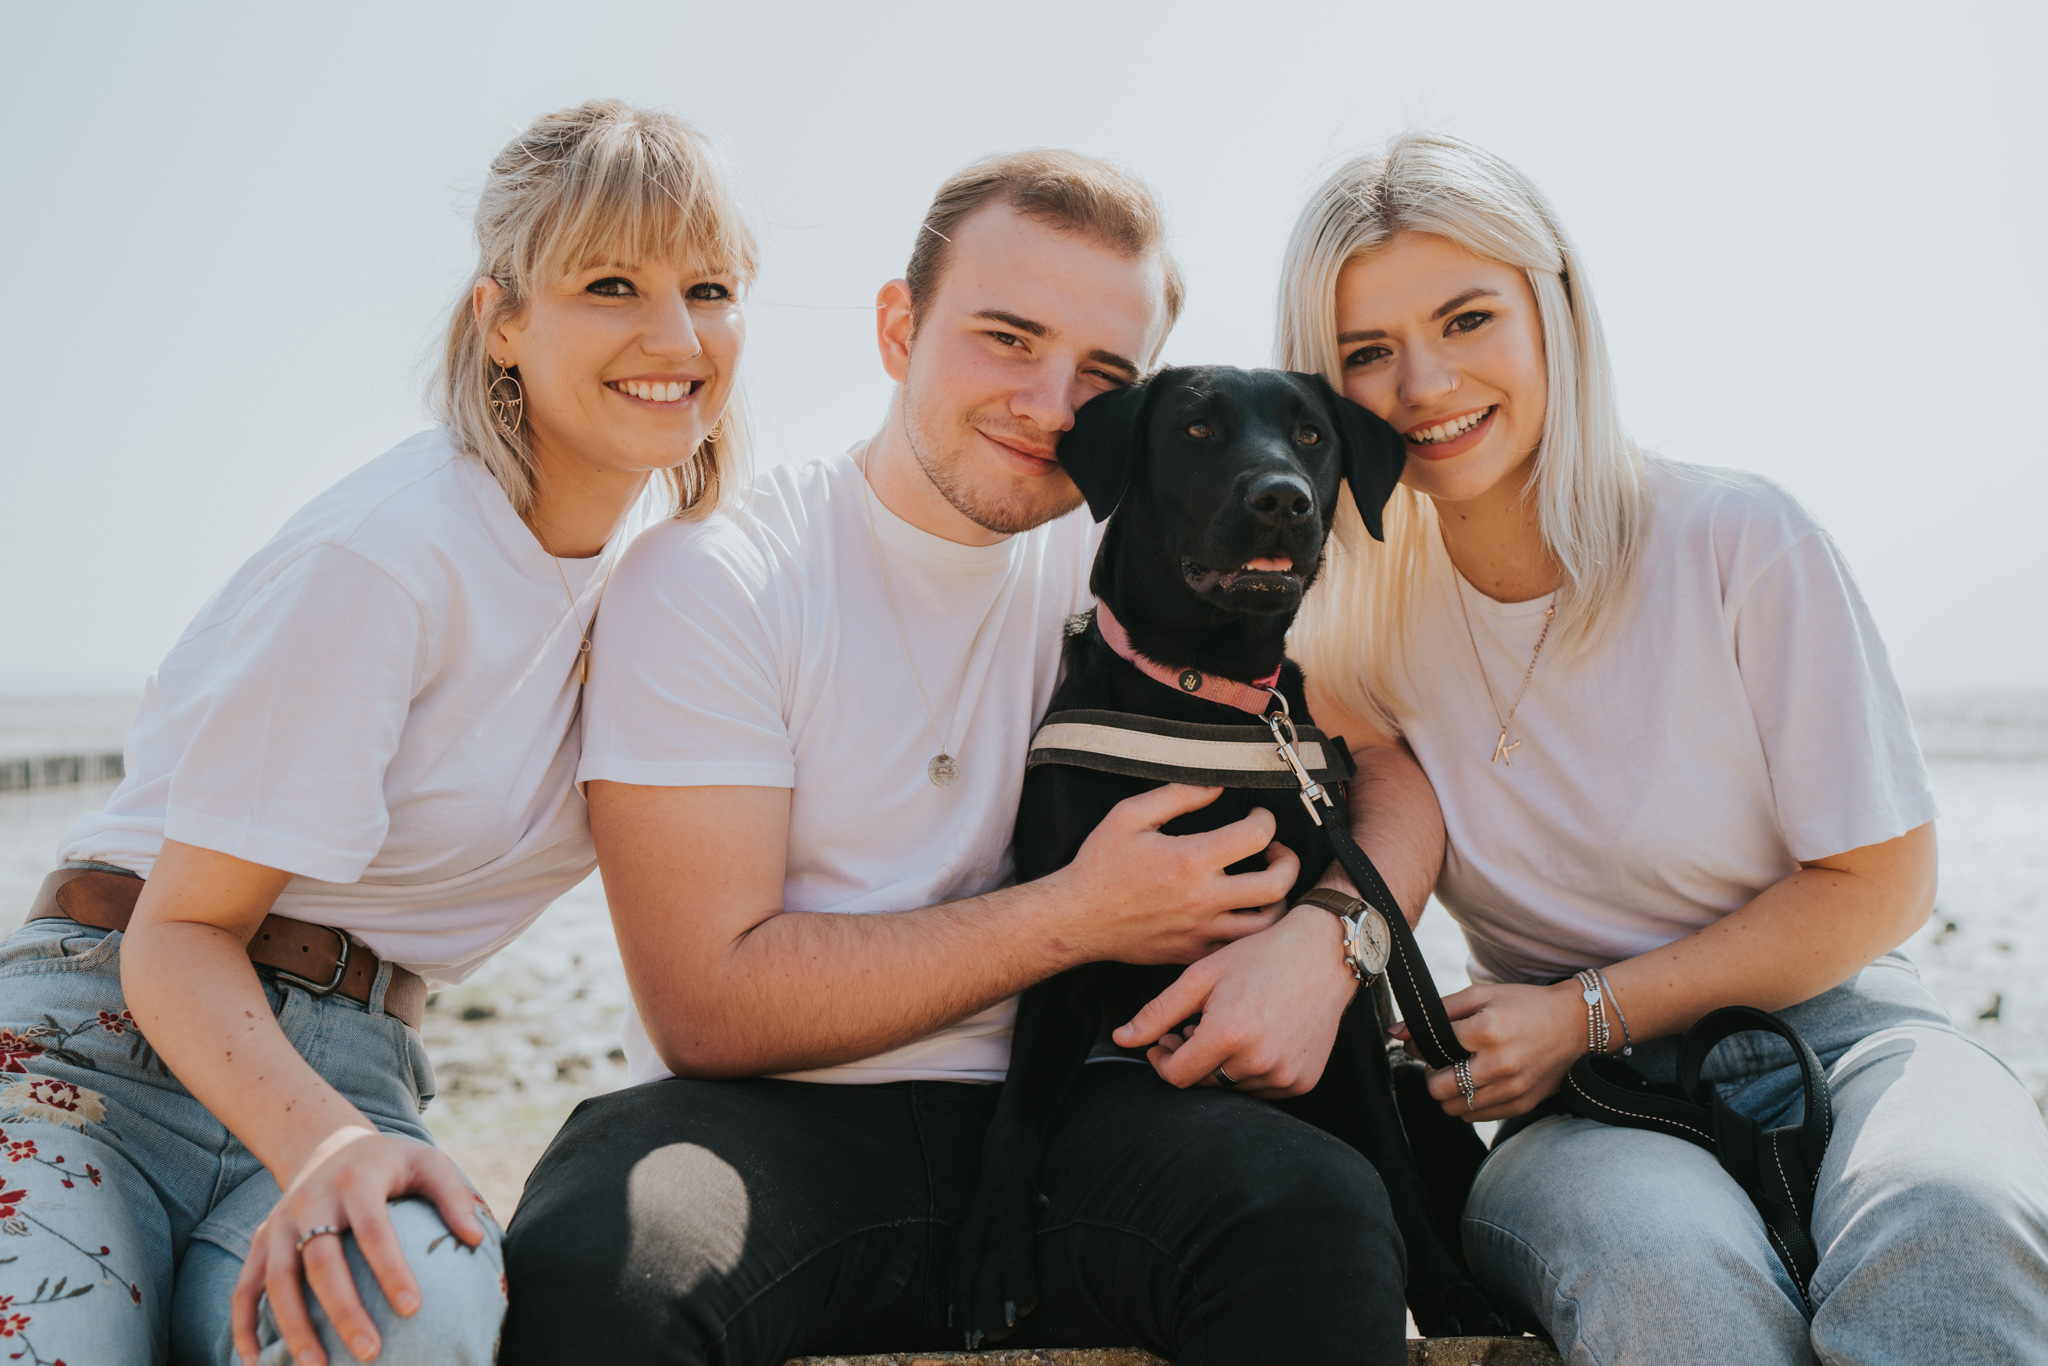 penny-family-cudmore-grove-beach-family-session-grace-elizabeth-colchester-essex-alternative-wedding-lifestyle-photographer-essex-suffolk-devon-28.jpg